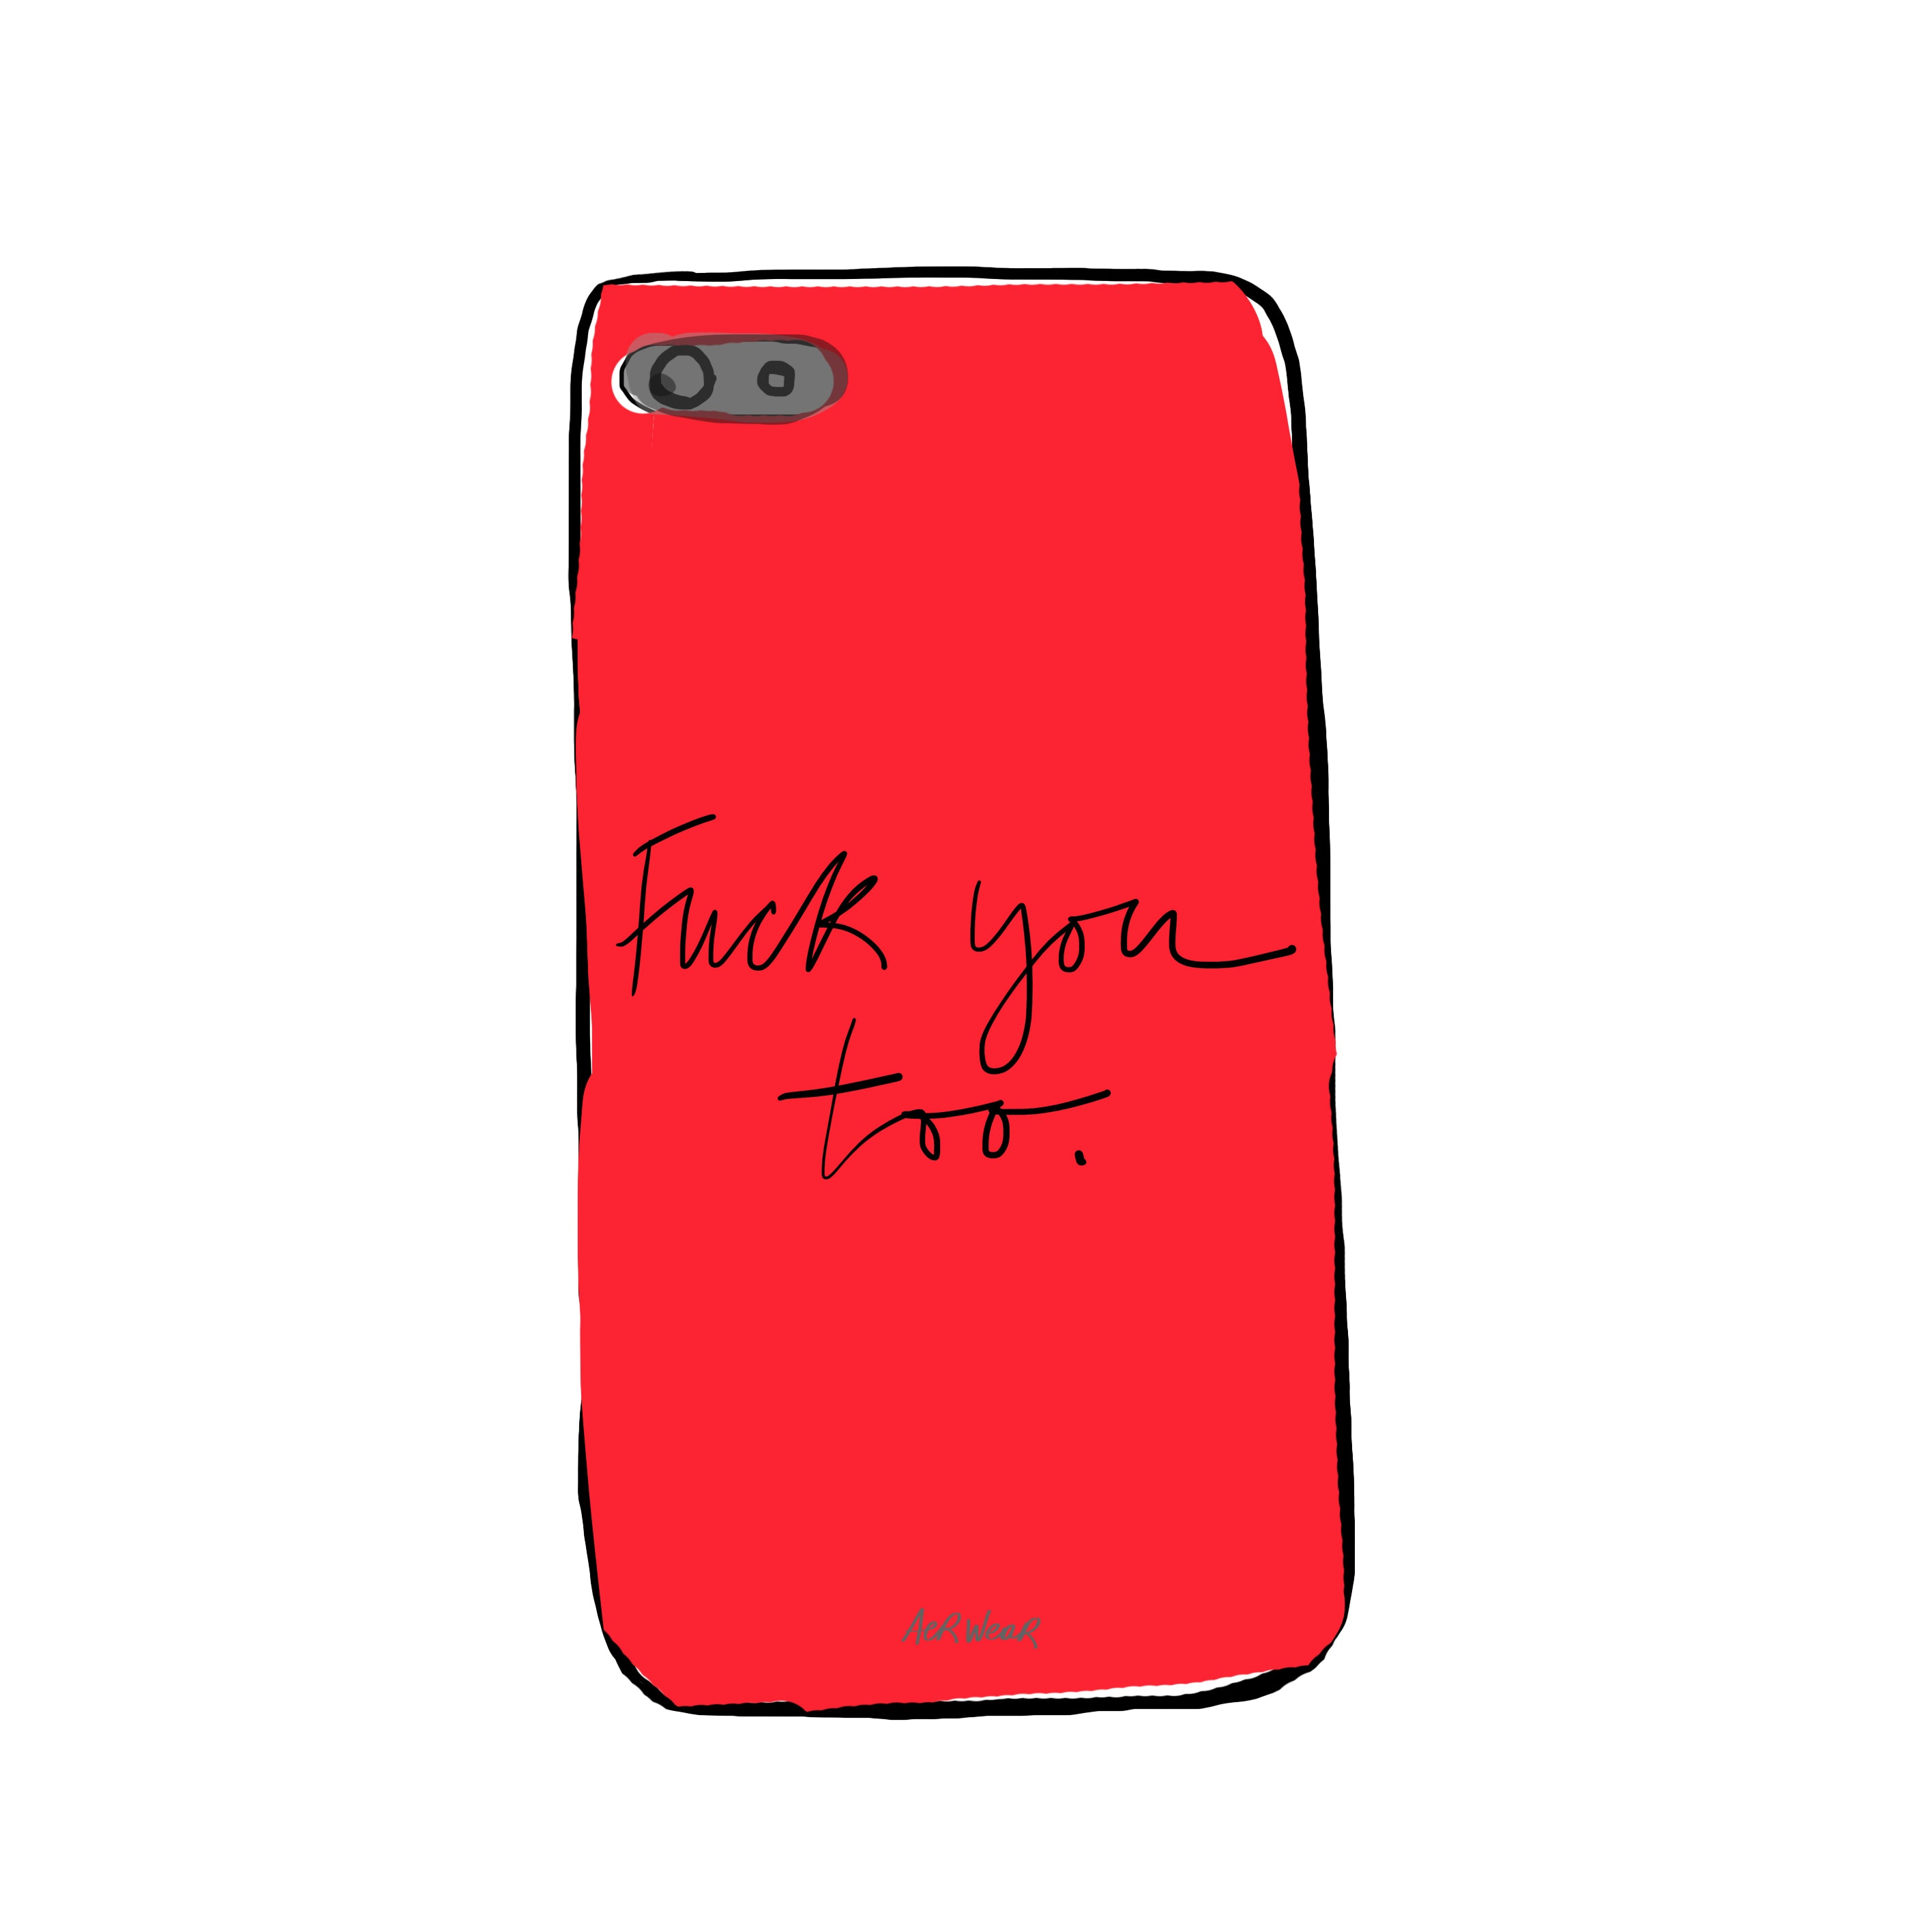 Fuck you too. PHONE CASE